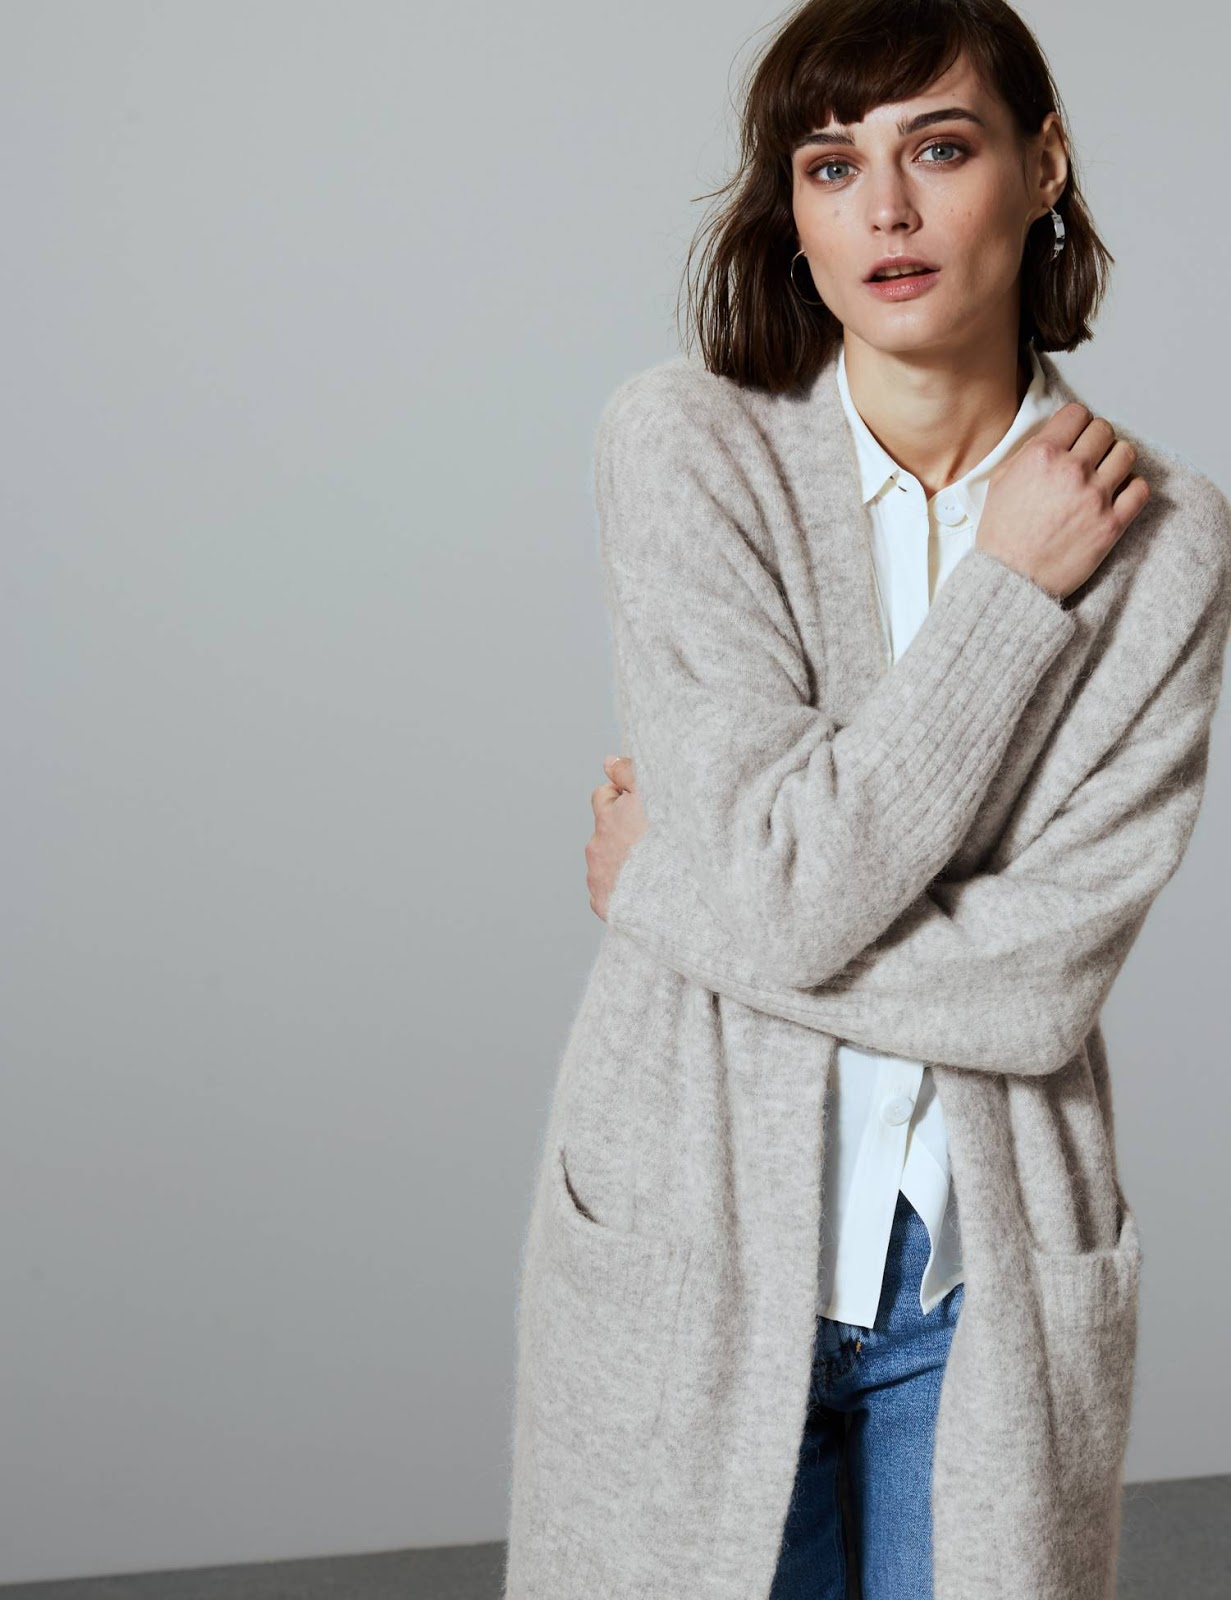 Marks & Spencer Wool Blend Textured Cardigan